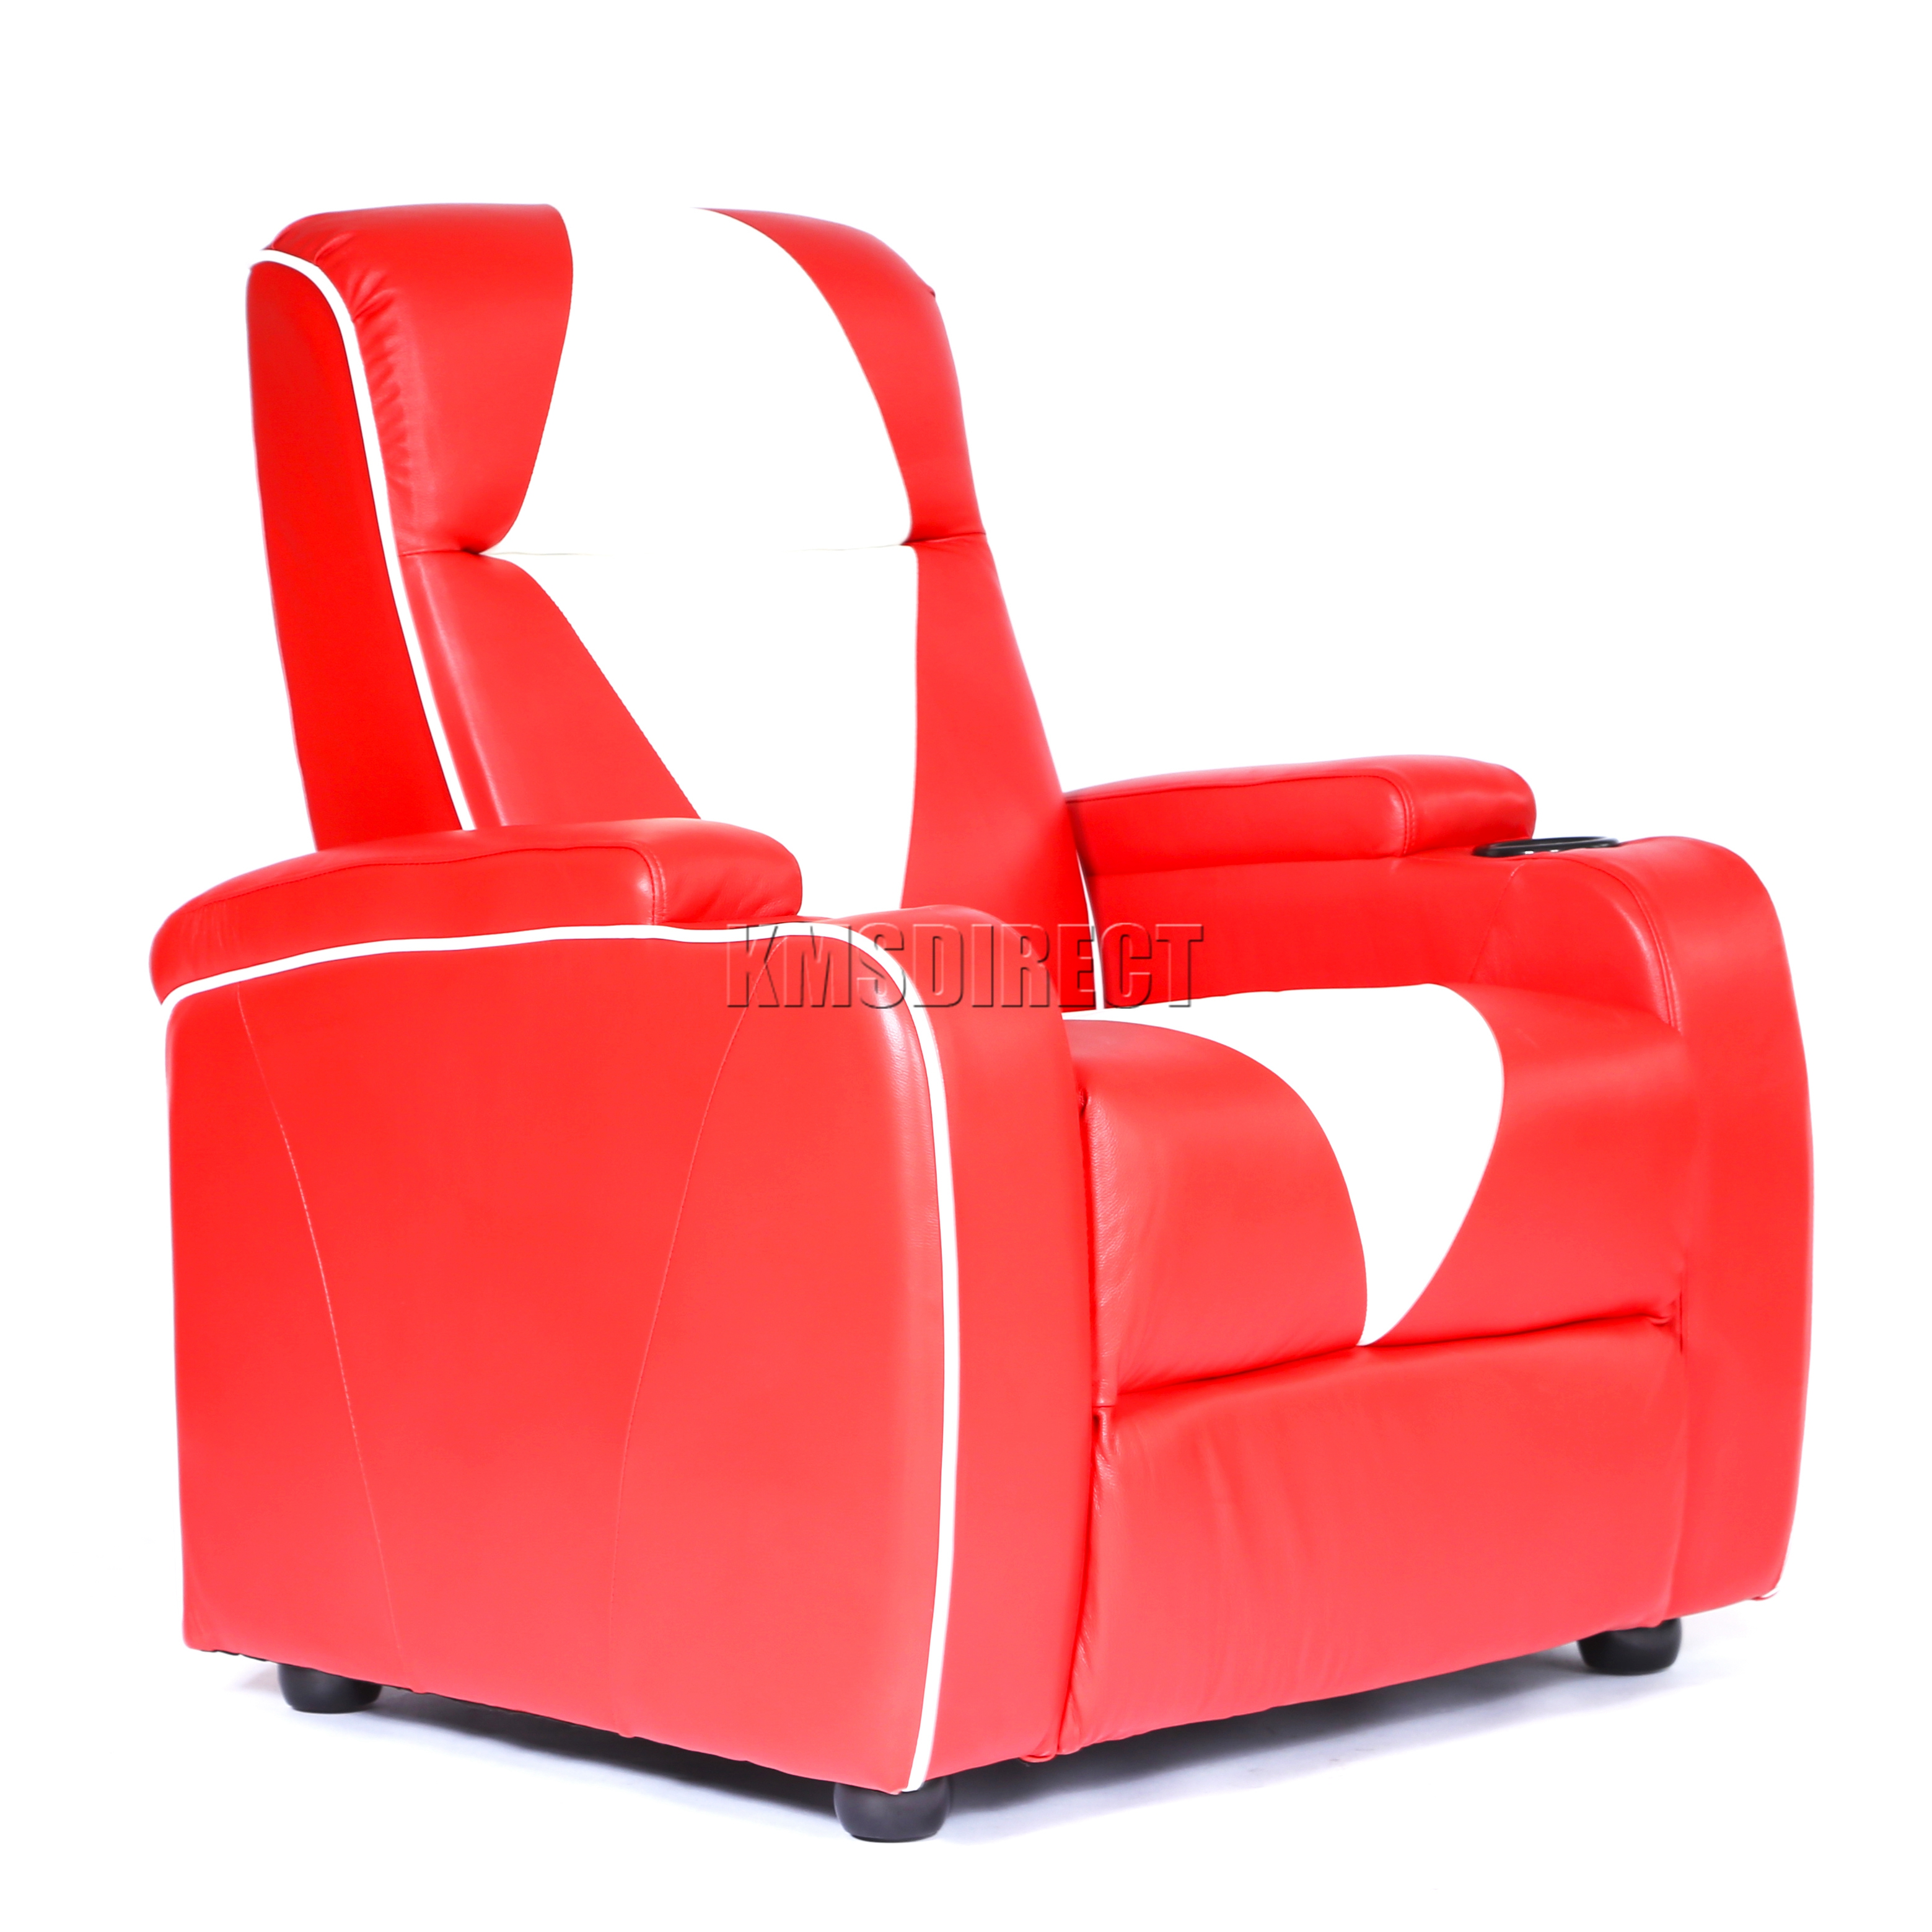 electric recliner sofa not working barcelona cube set in black and vanilla foxhunter leather retro theatre cinema movie chair